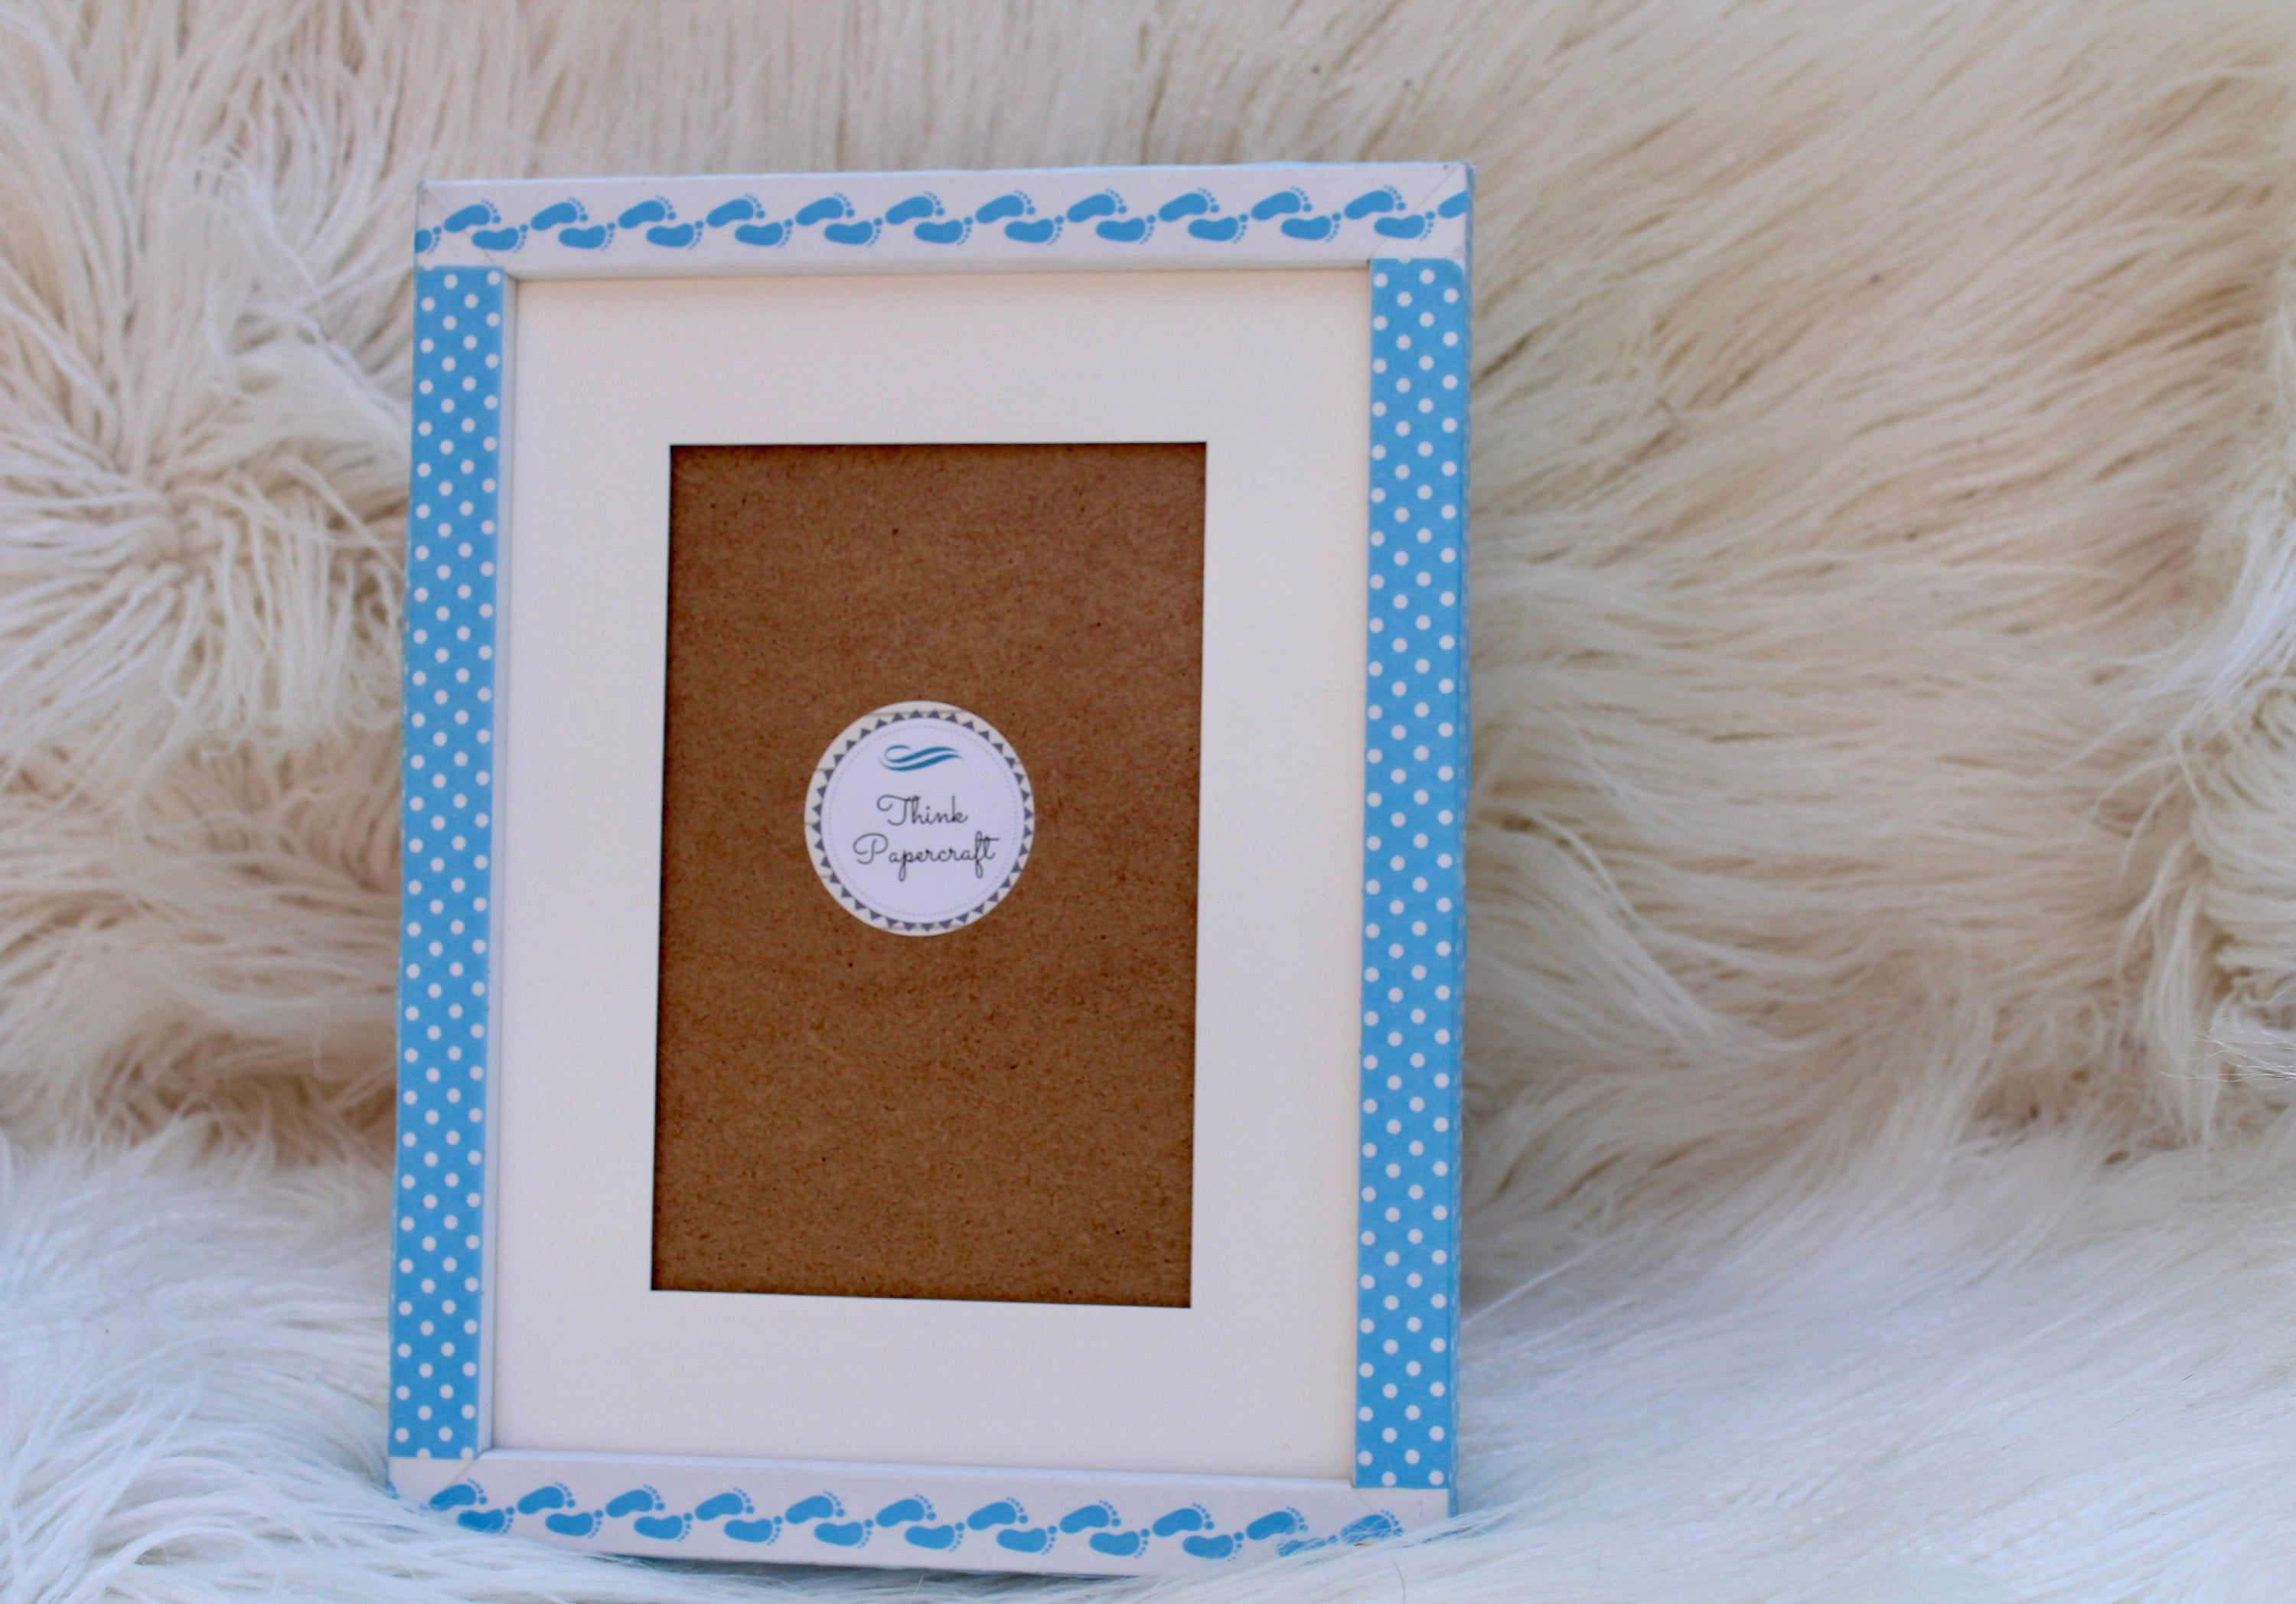 Hello Baby Boy Decorated Photo Picture Frame 4x6 Inches 10x15 Etsy Photo Decor Picture Frames Photo Picture Frames